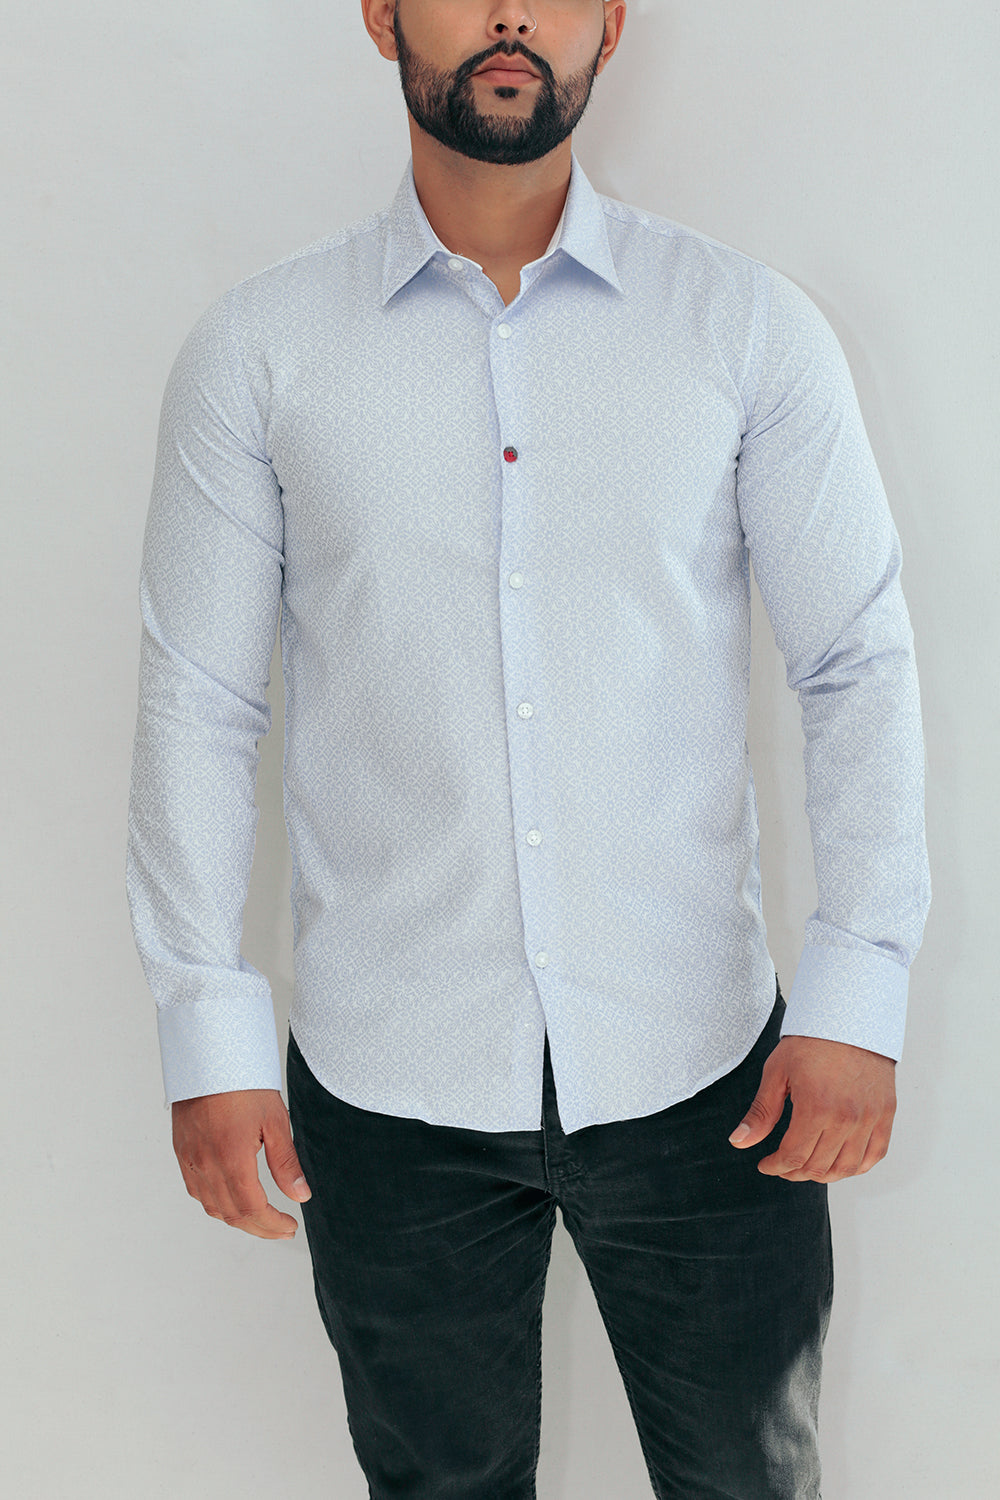 IBIZA Blue/White Mediterranean Printed Mens Shirt In Point Collar